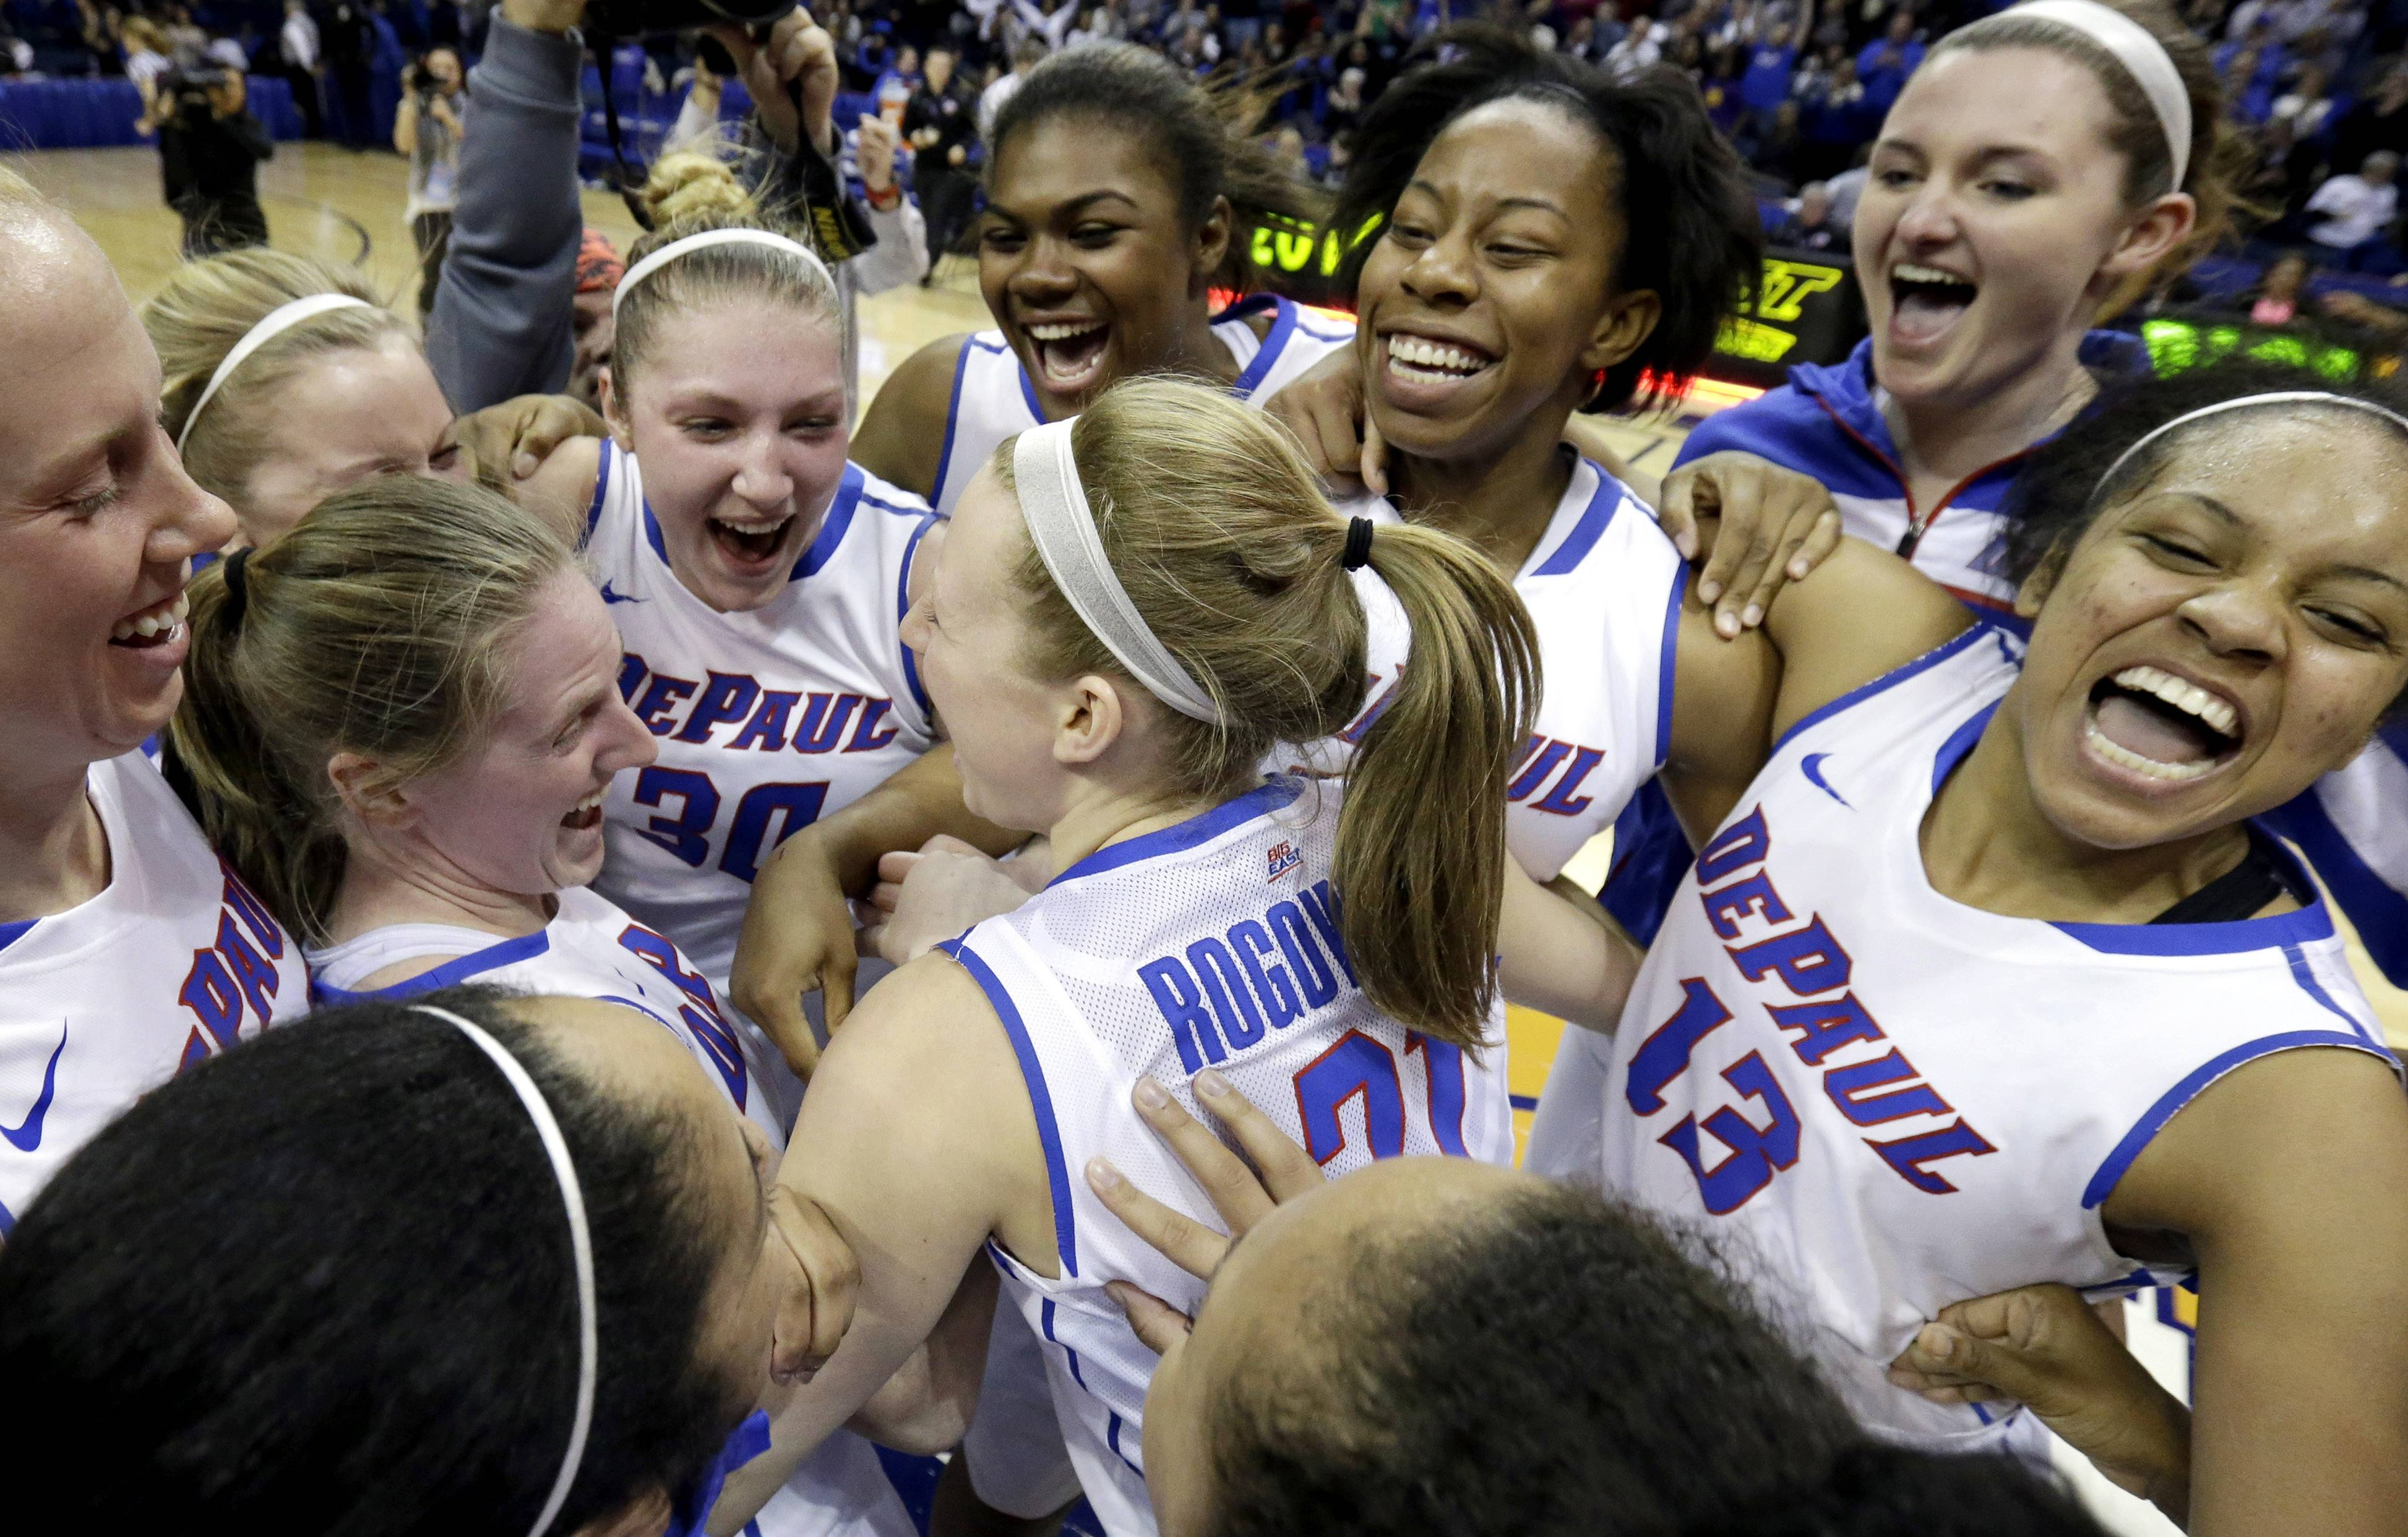 DePaul players celebrate after they defeated St. John's 65-57 during an NCAA college basketball game in the final of the 2014 Big East women's basketball tournament in Rosemont, Ill., Tuesday, March 11, 2014. (AP Photo/Nam Y. Huh)